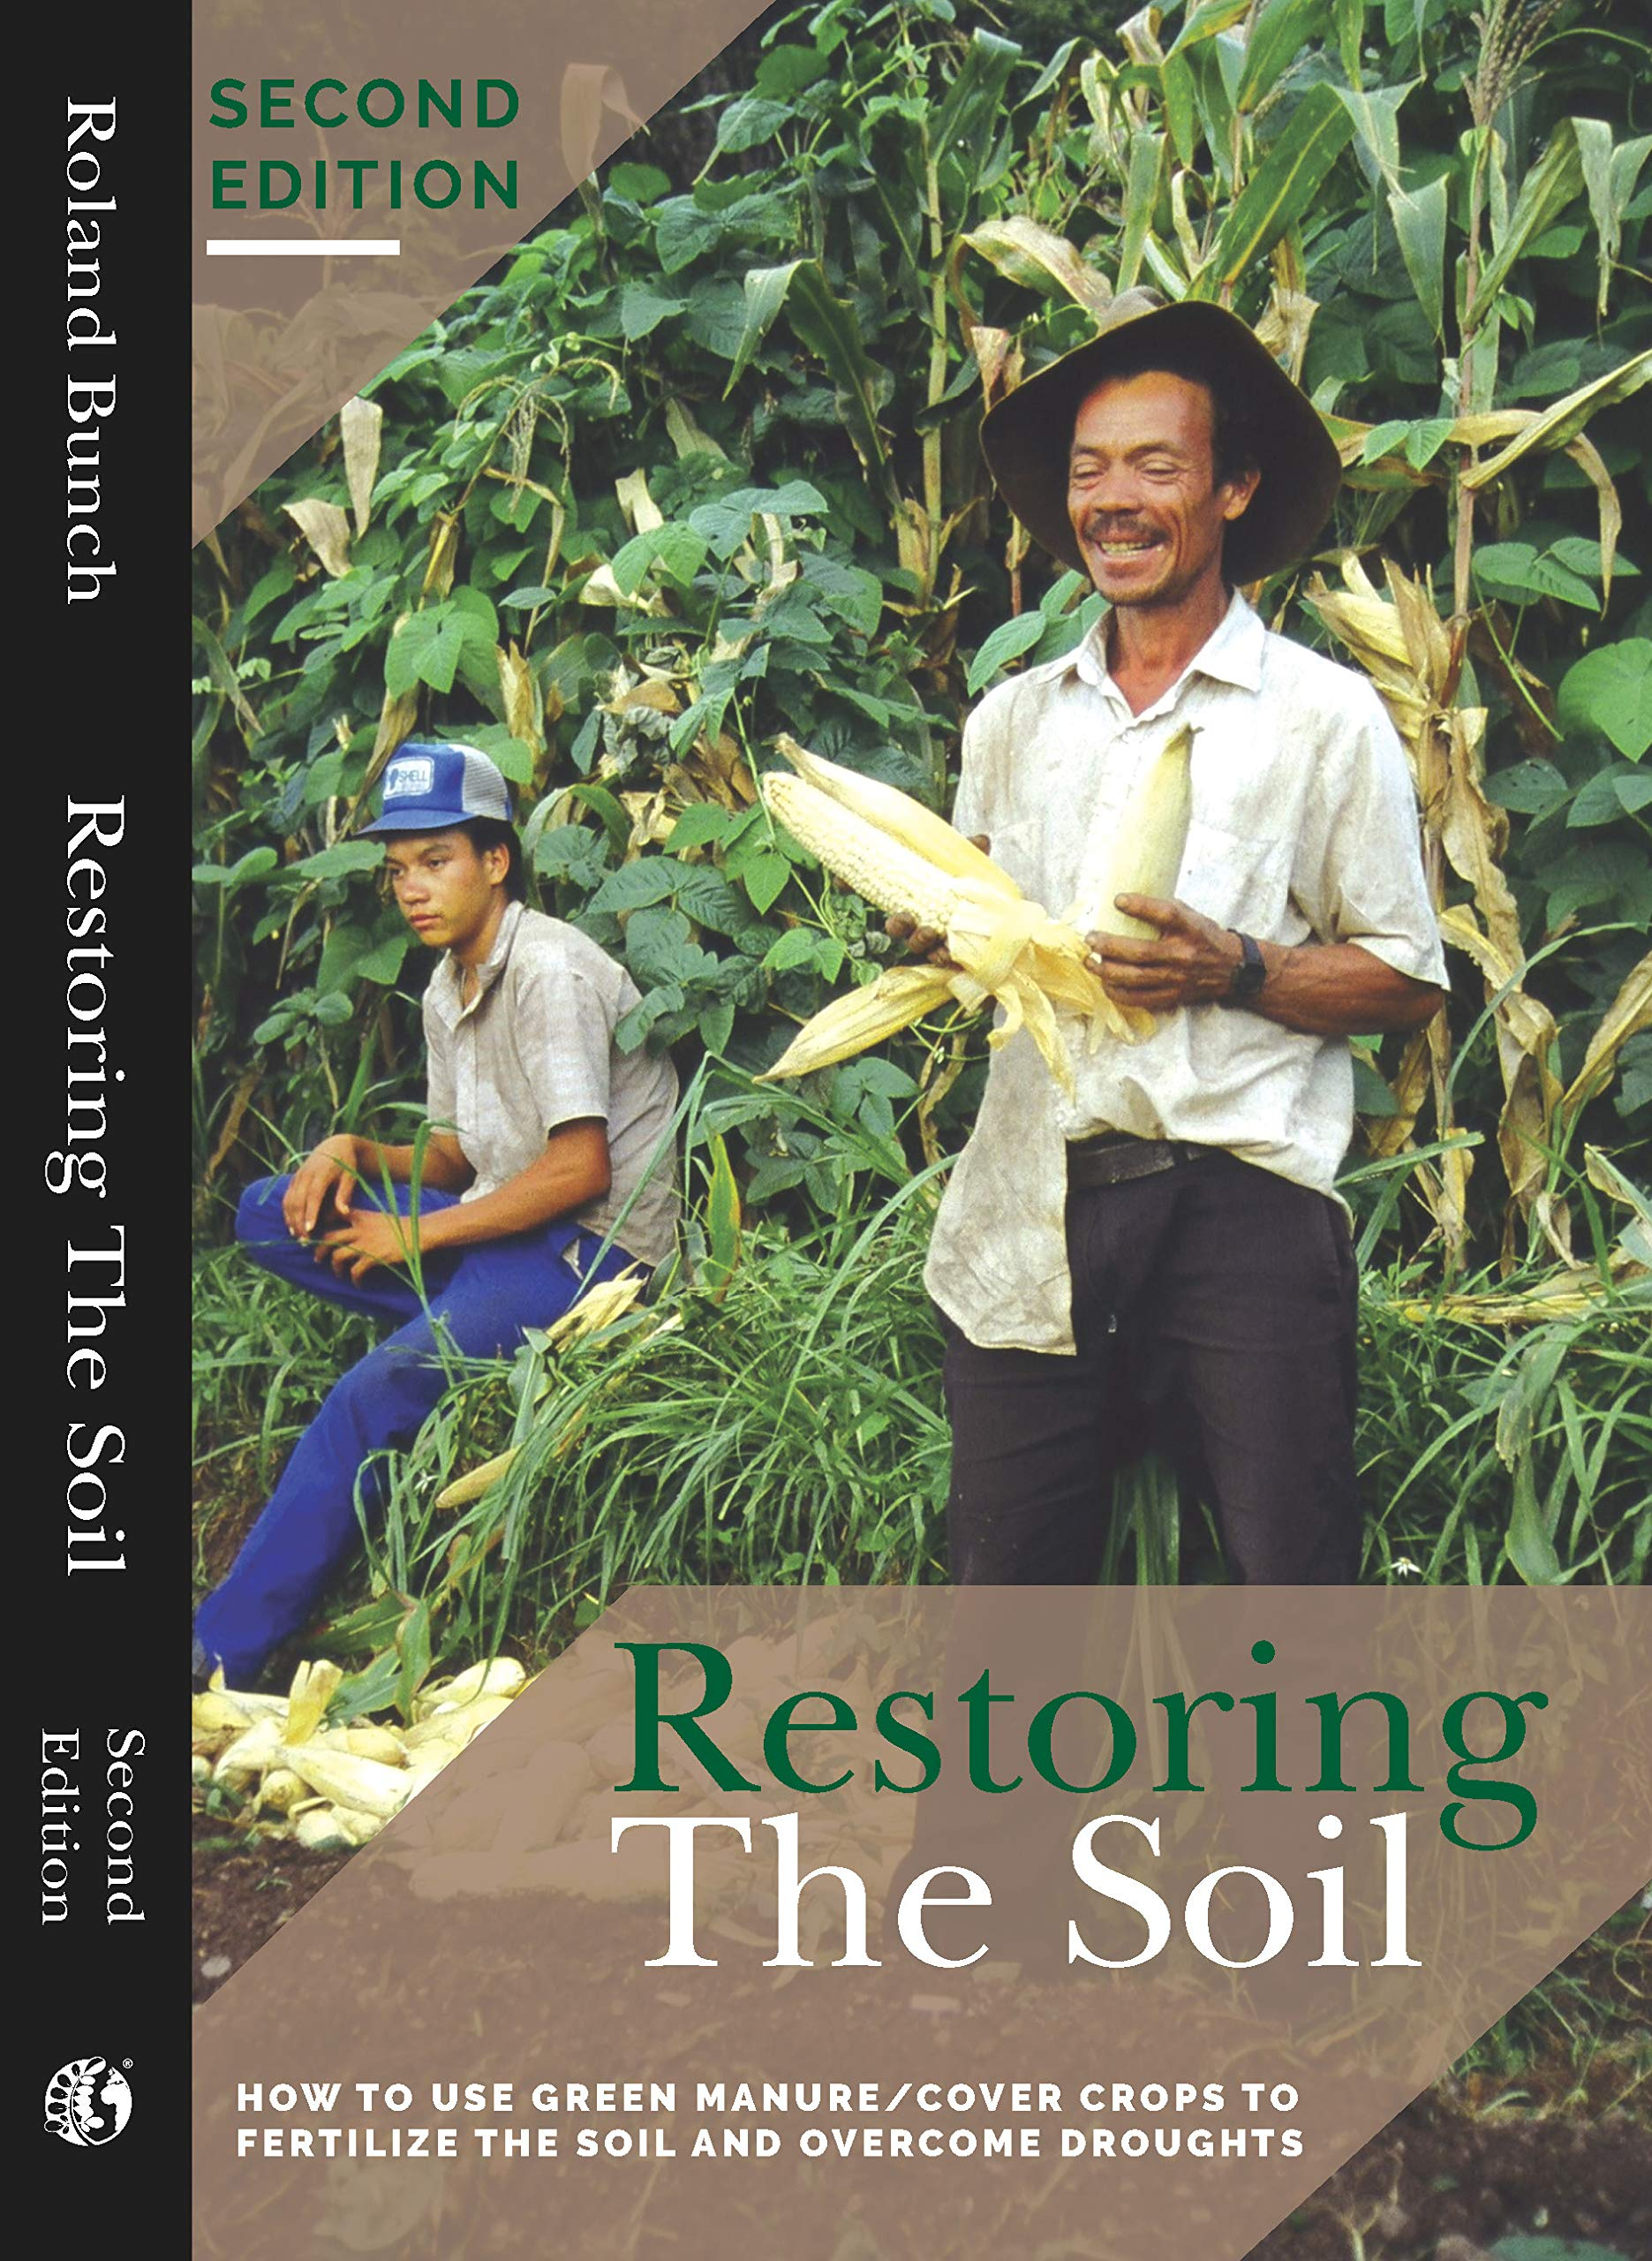 Restoring the Soil: How to use green manure/cover crops to fertilize the soil and overcome droughts